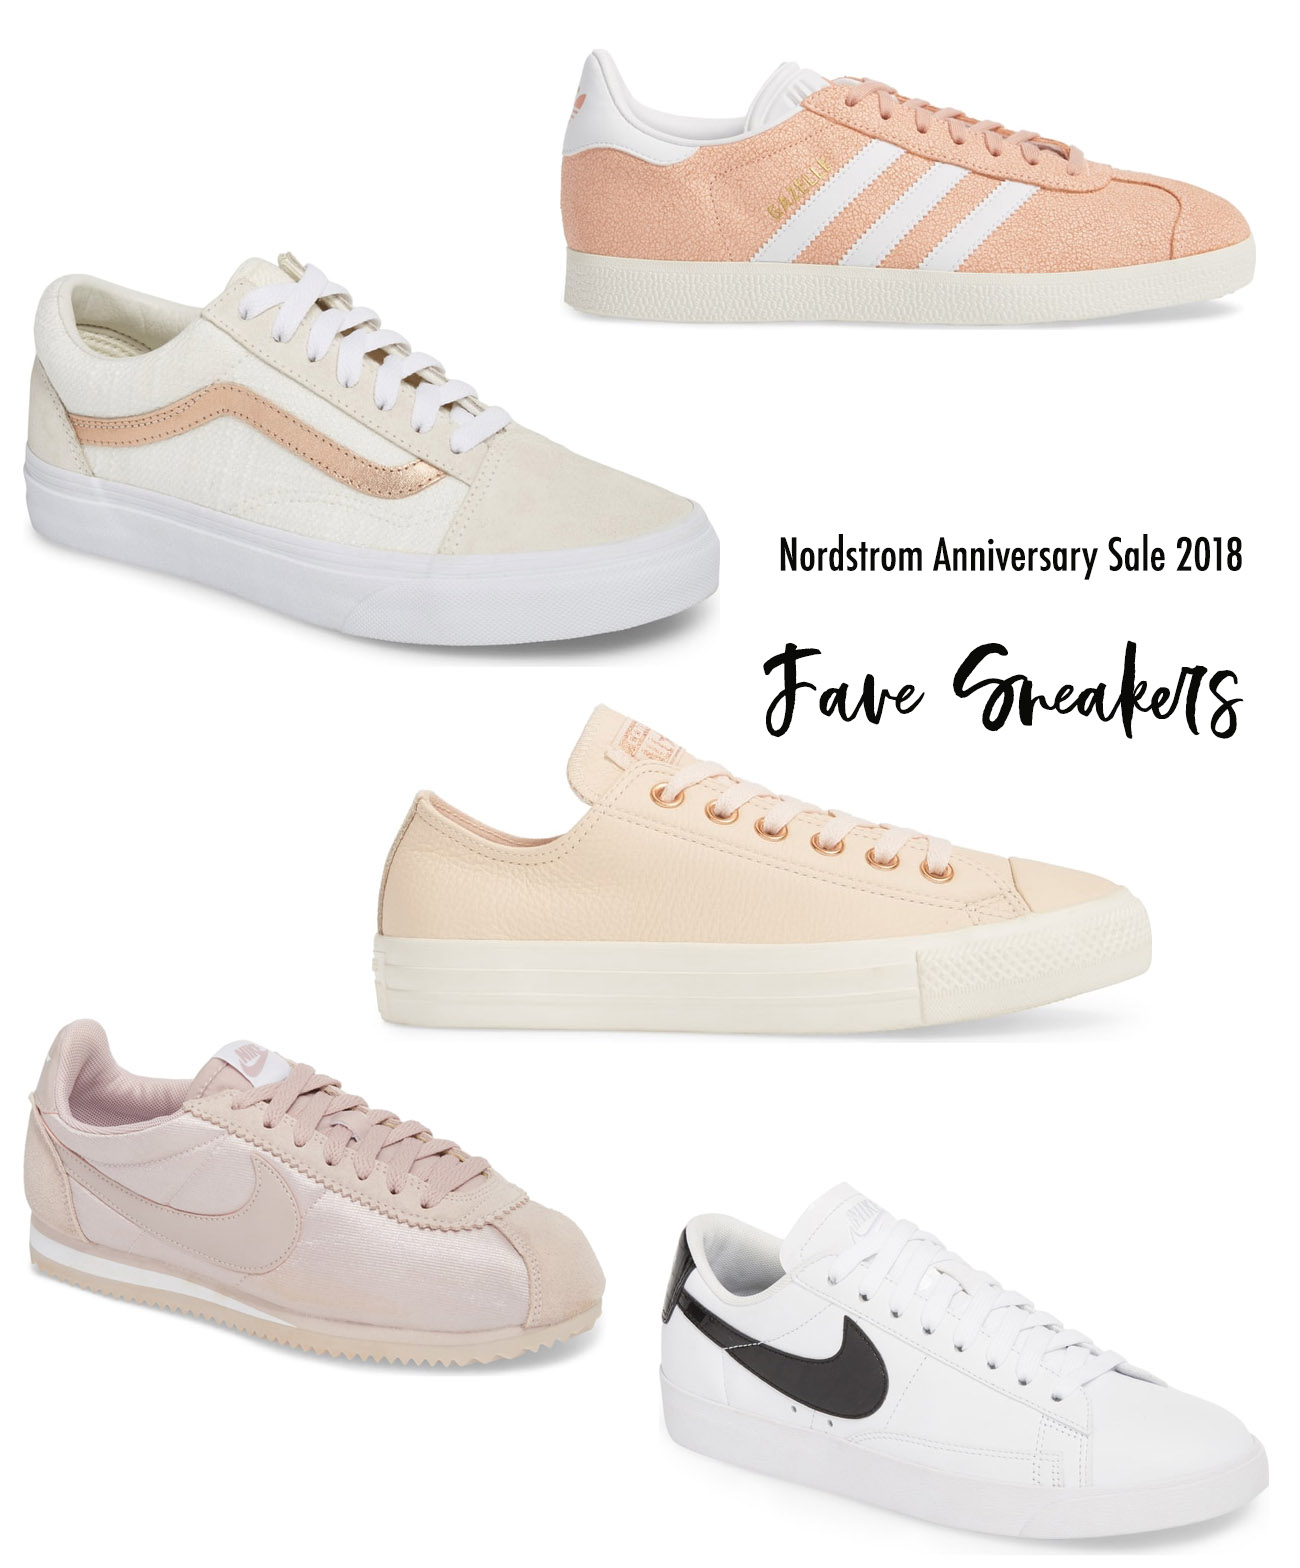 Fave Sneakers from the Nordstrom Anniversary Sale